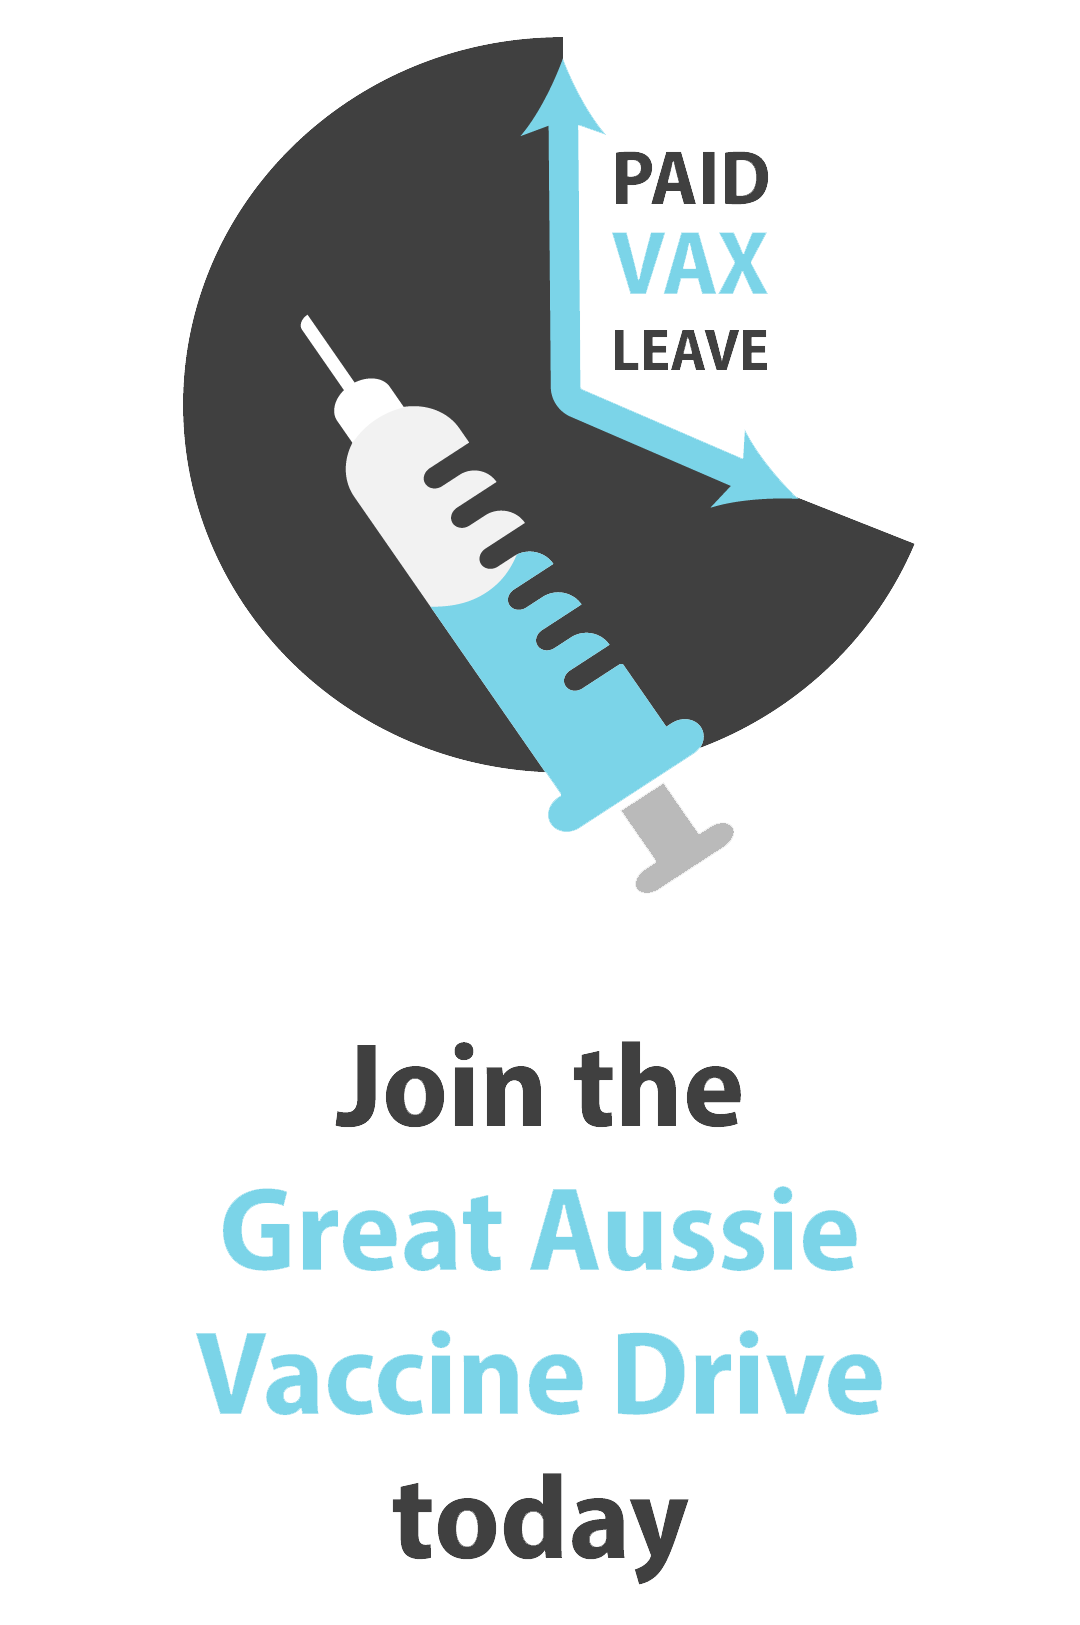 Greate Aussie Vaccine Drive - Side Panel